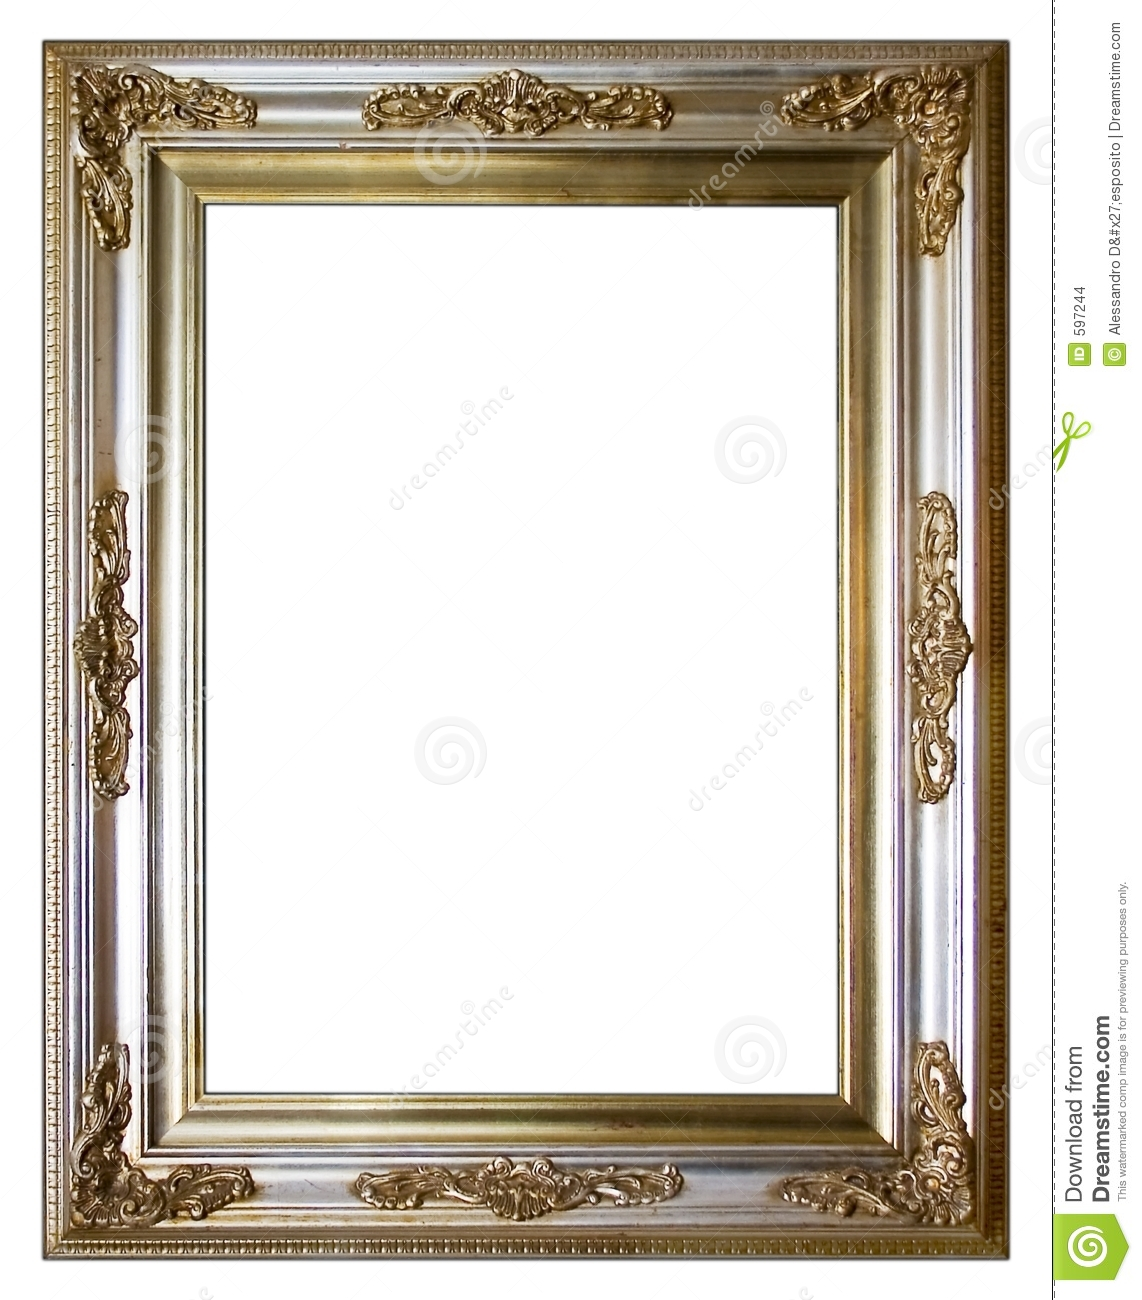 More similar stock images of ` Vintage silver frame `